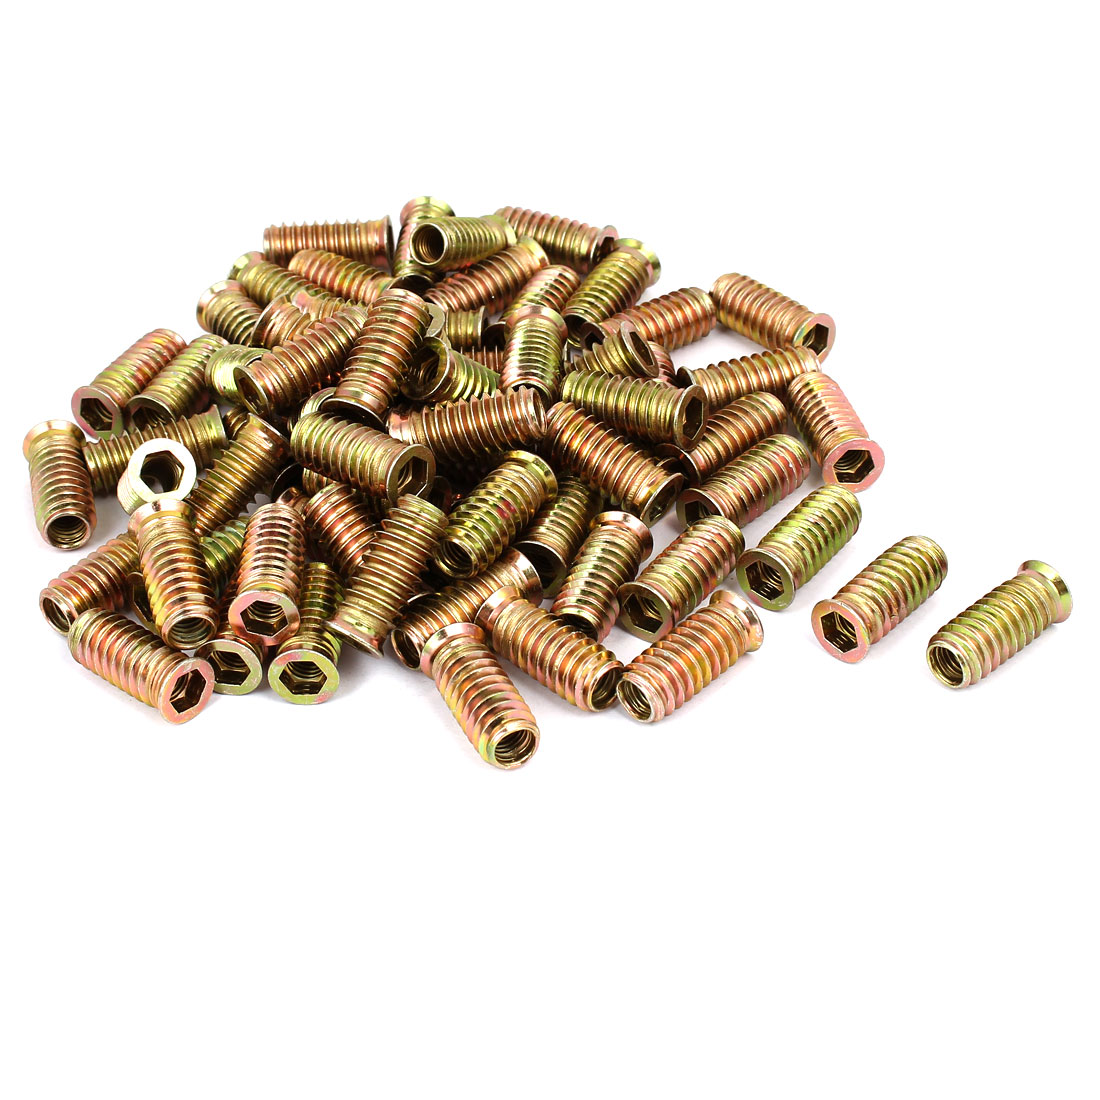 8mm x 30mm Wood Furniture Insert Interface E-Nut Hex Socket Threaded Nut 80PCS